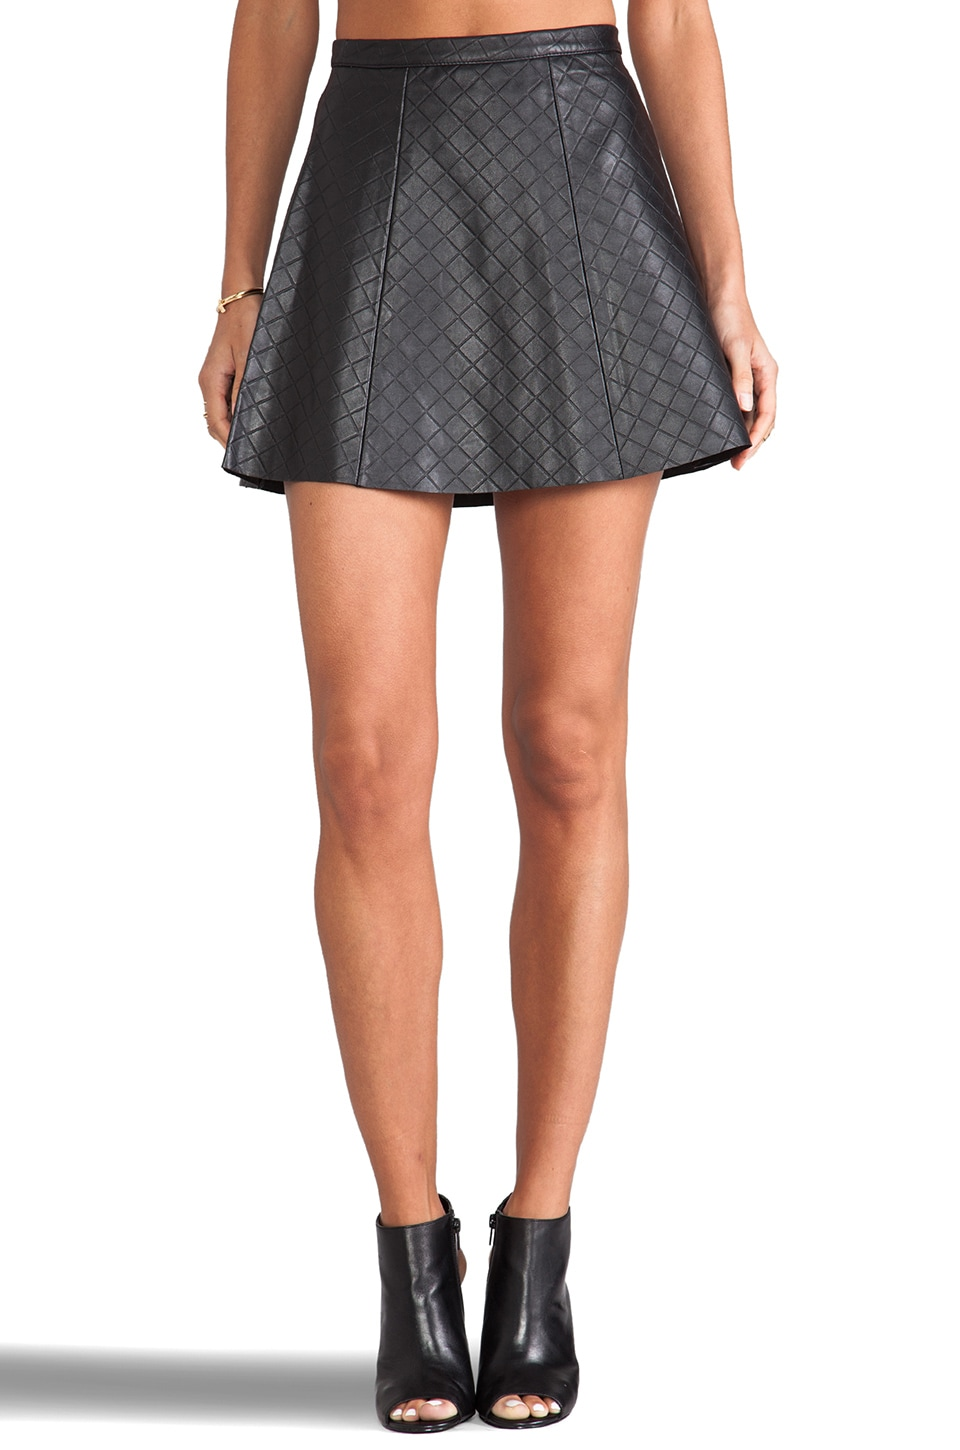 LOVE LEATHER Legs Legs Legs Quilted Skirt in Black